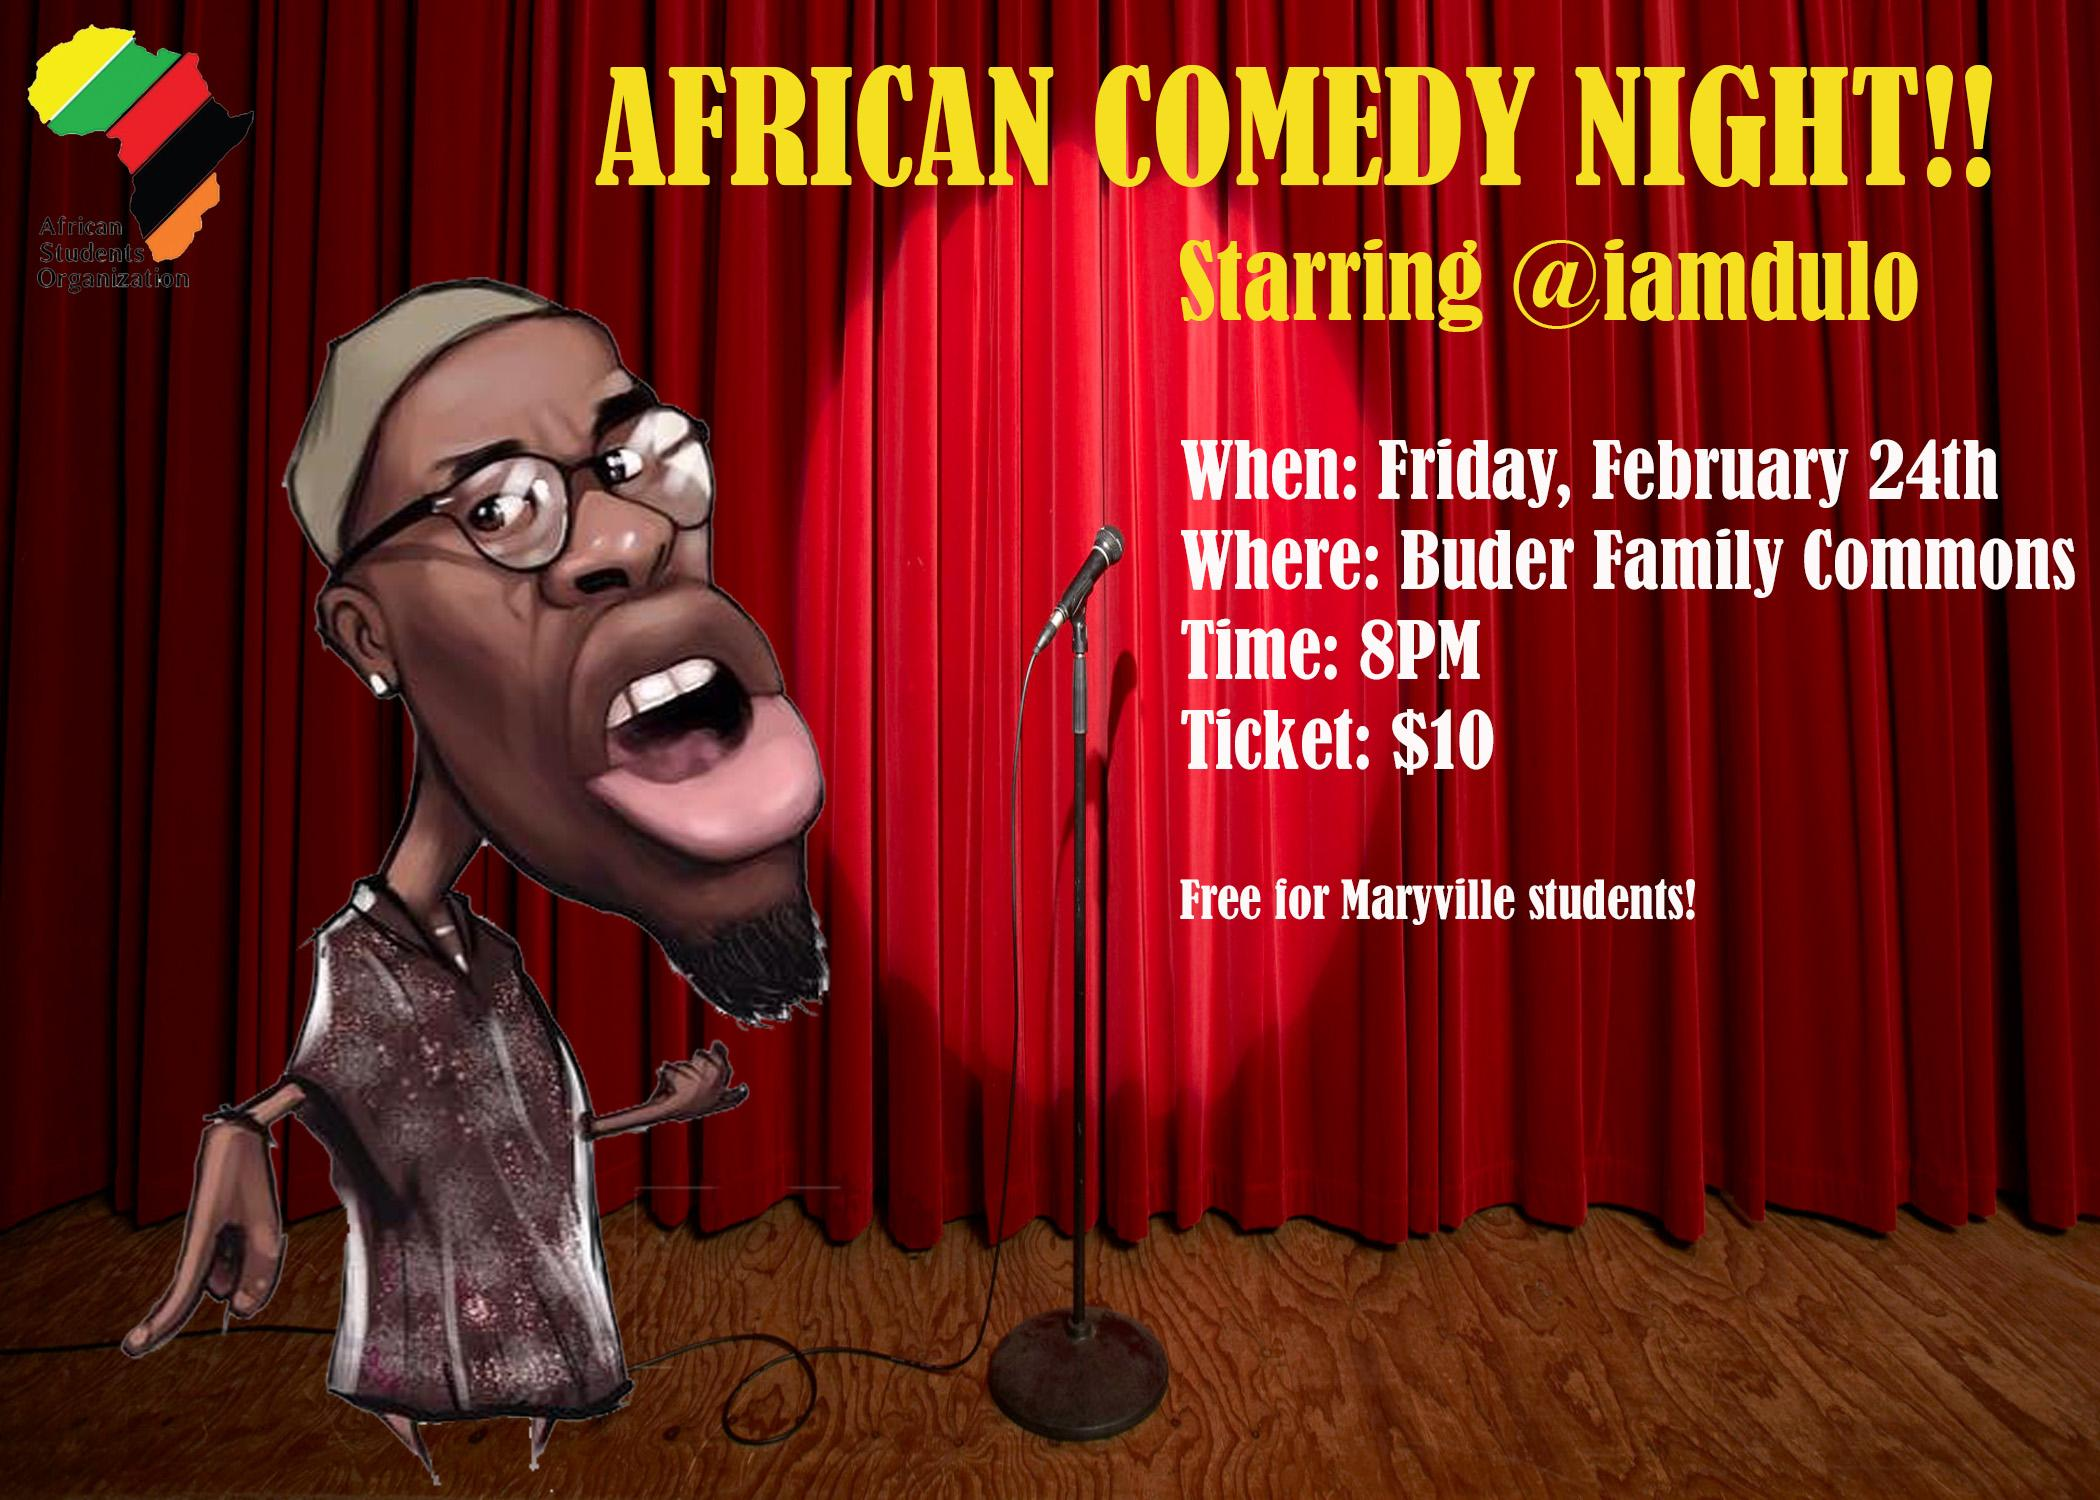 African Comedy Night